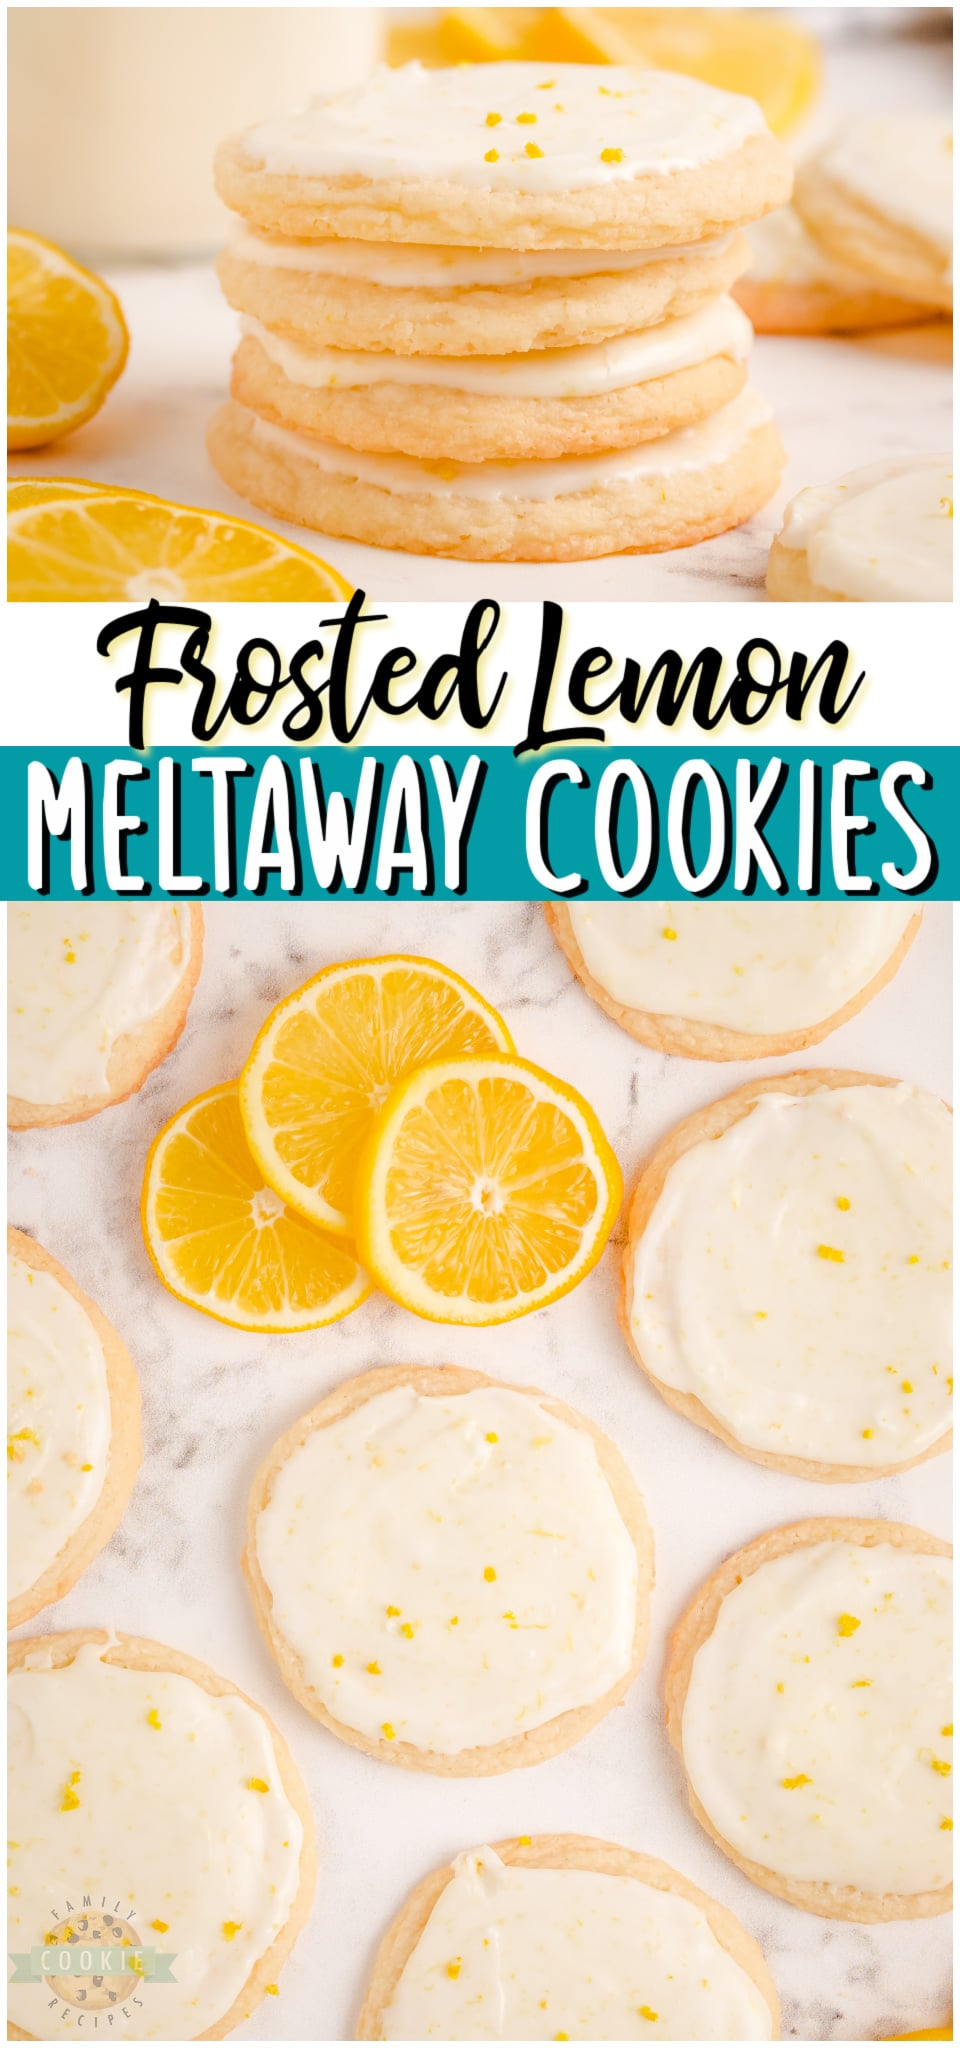 Lemon Meltawaysmade with simple ingredients like butter, flour, lemon zest & cornstarch. Soft, tender meltaway cookies topped with a lovely fresh lemon glaze! #lemon #cookies #meltaways #baking #dessert #easyrecipe from FAMILY COOKIE RECIPES via @familycookierecipes